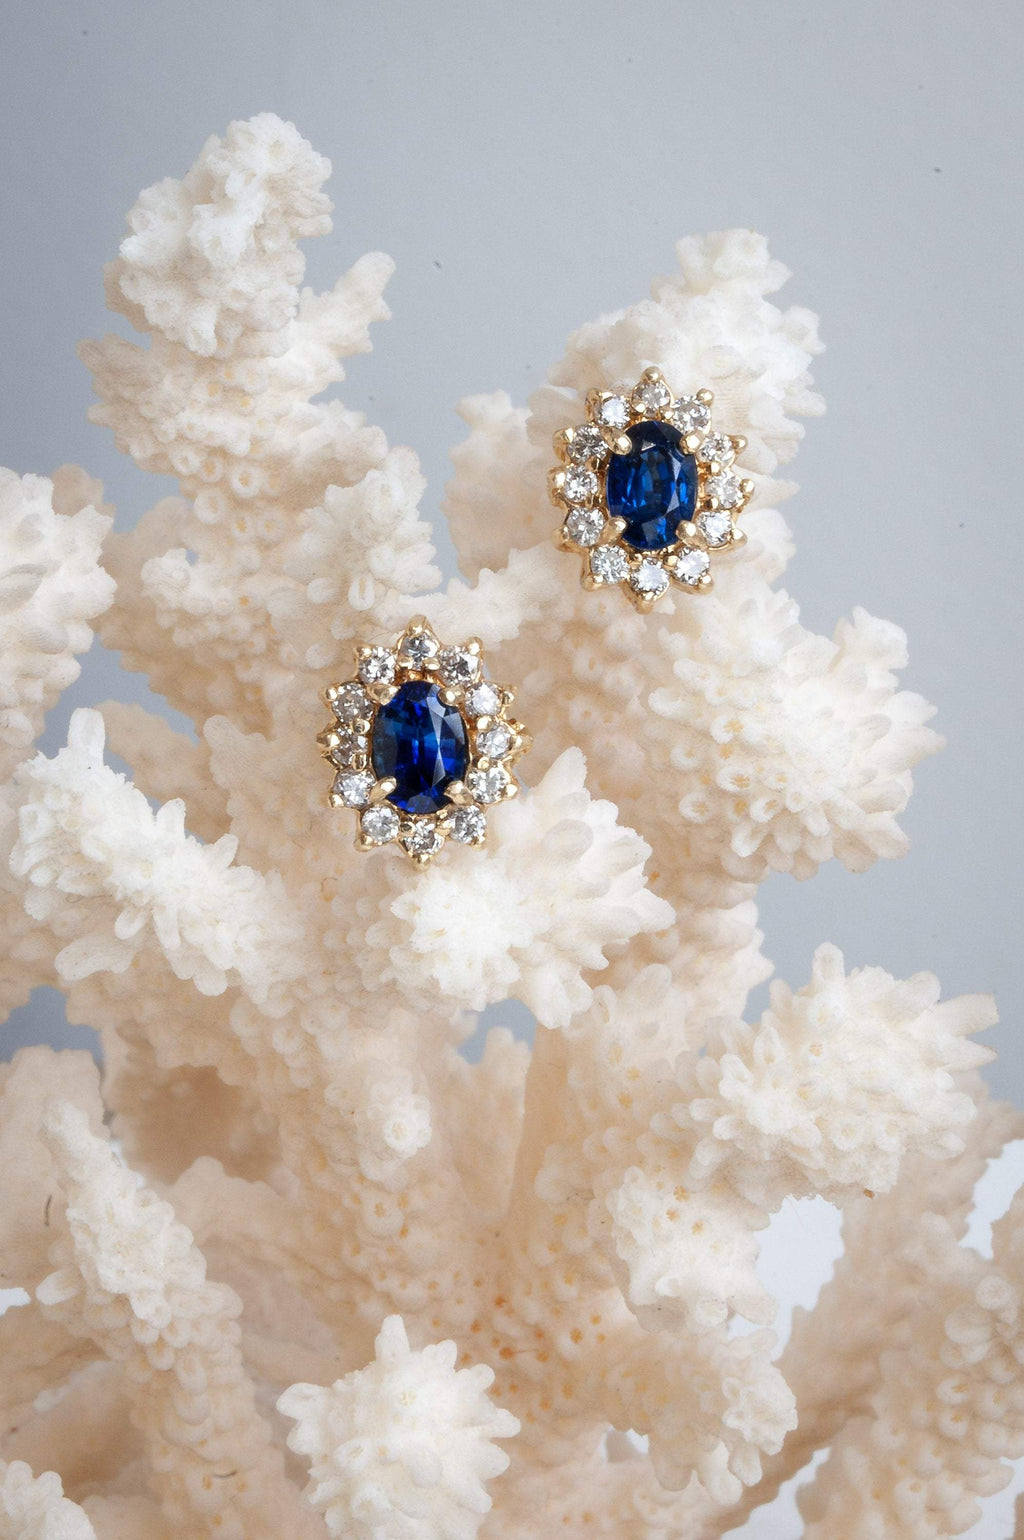 Oval Ceylon Sapphire and Diamond Halo Stud Earrings